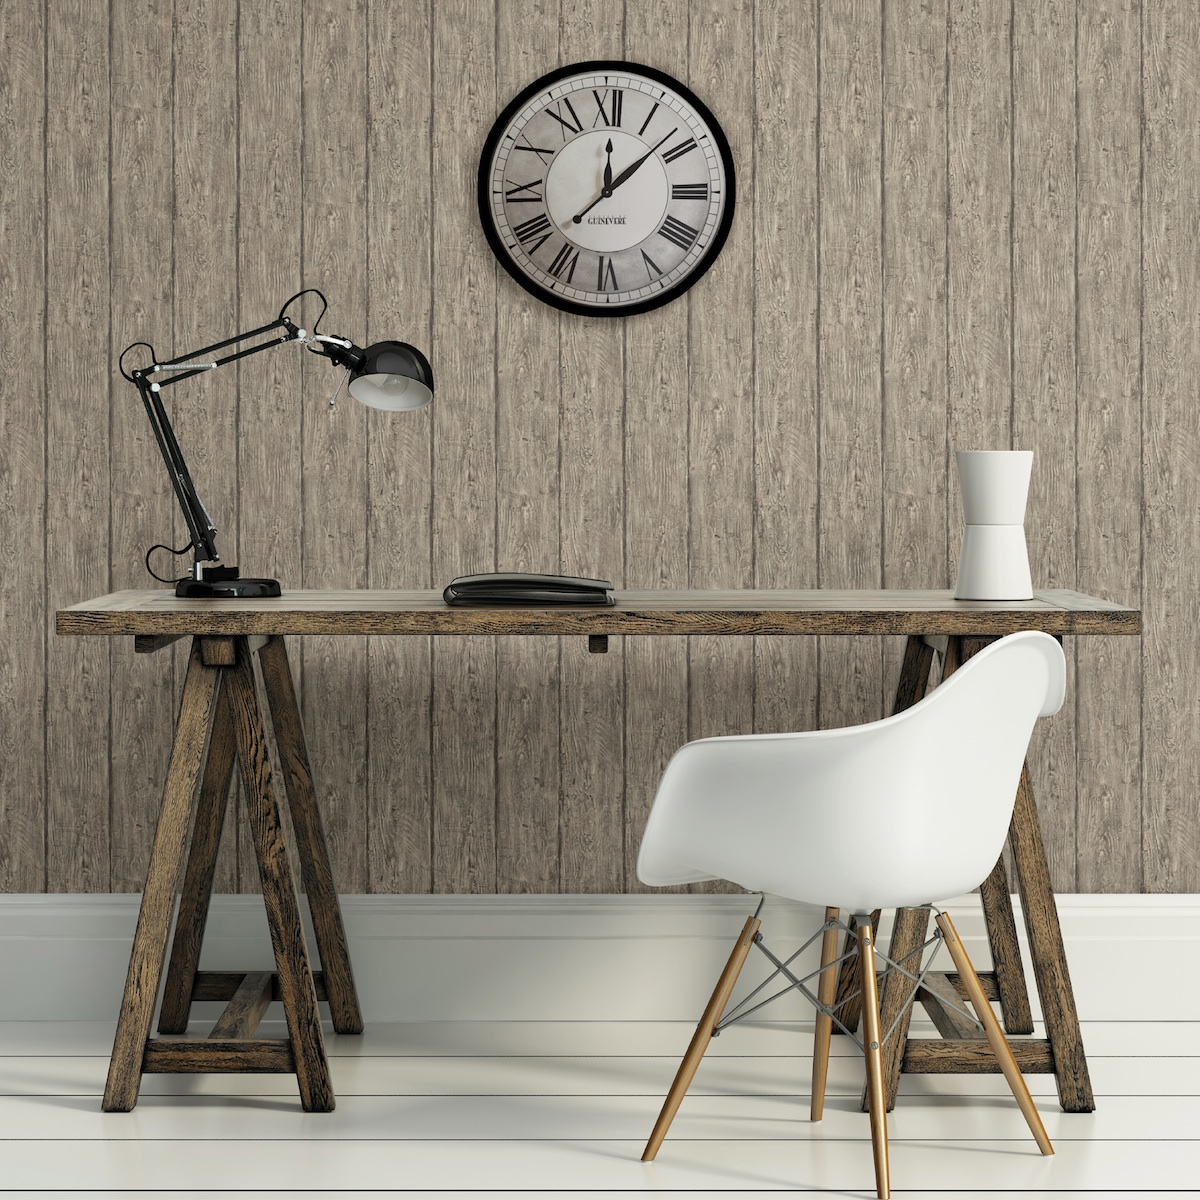 of reclaimed wood with this stylish faux wood wallpaper by Chesapeake 1200x1200